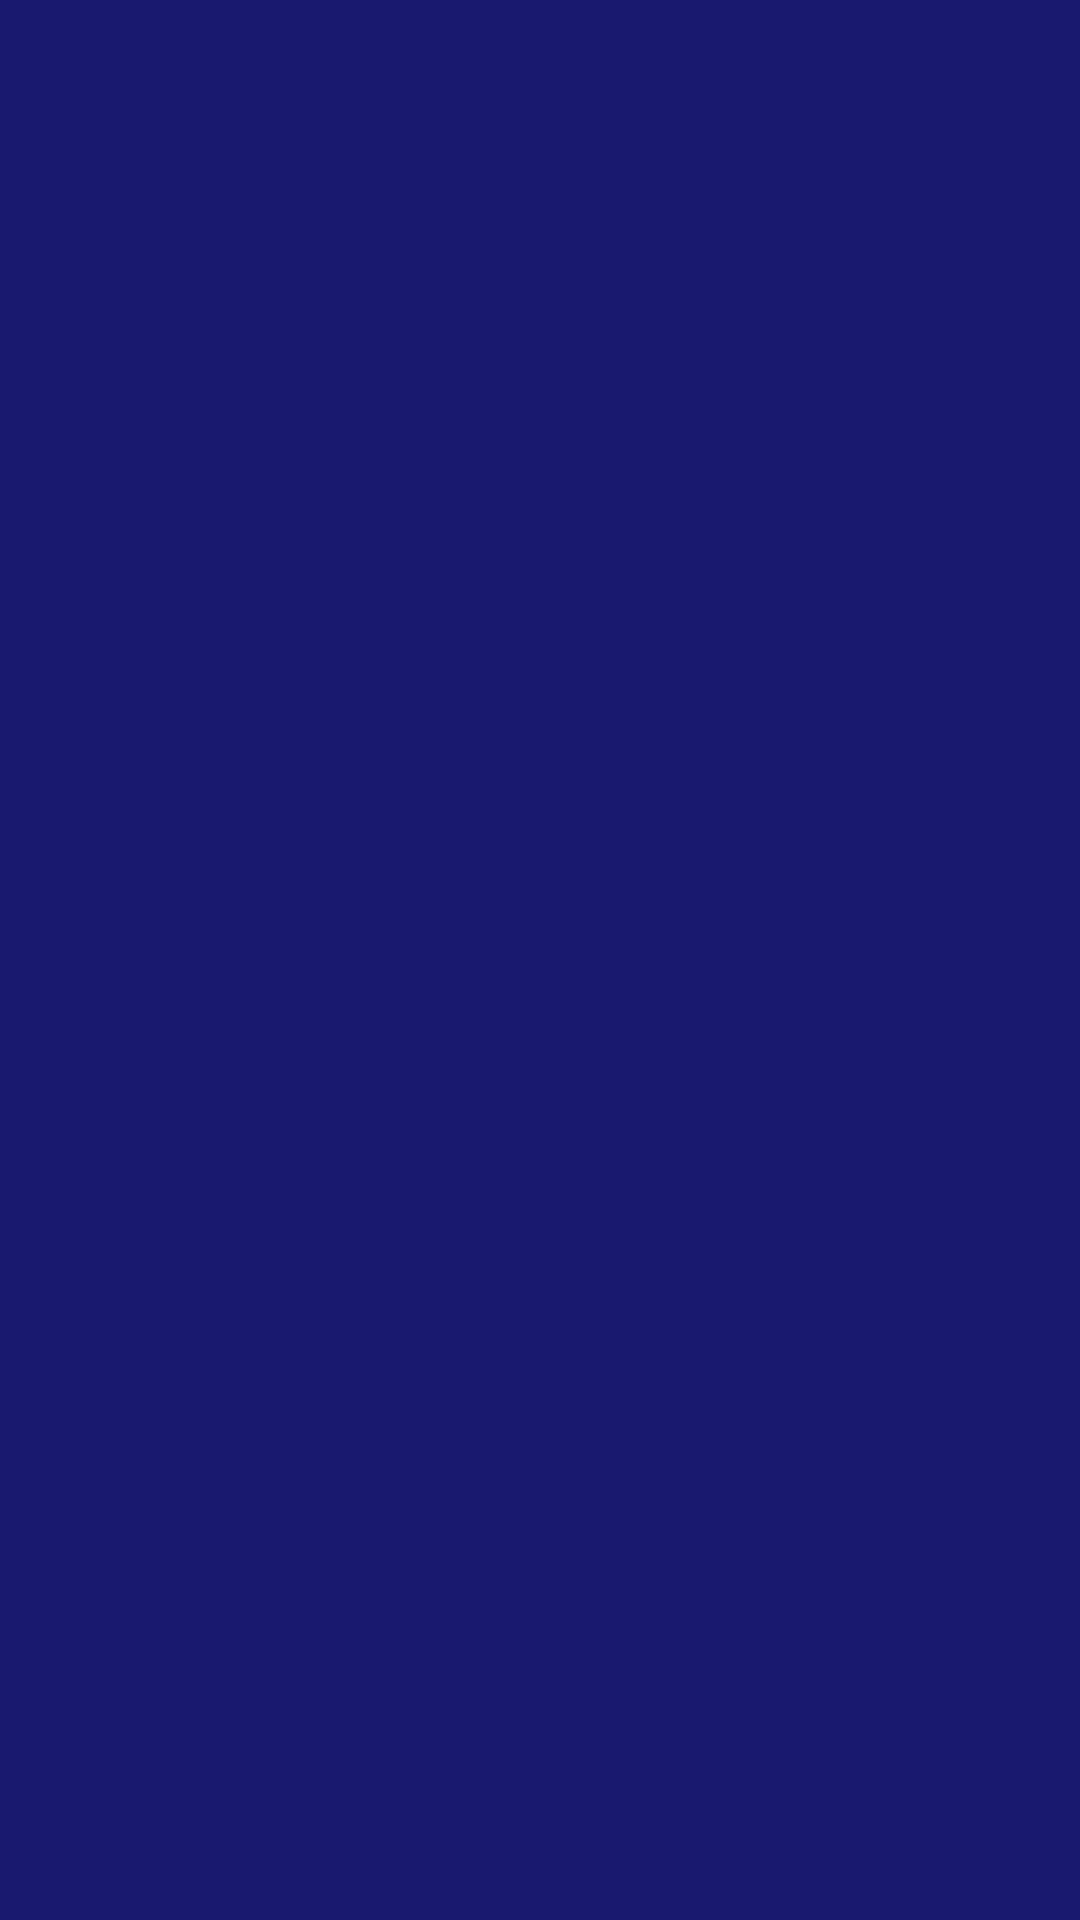 1080x1920 Midnight Blue Solid Color Background